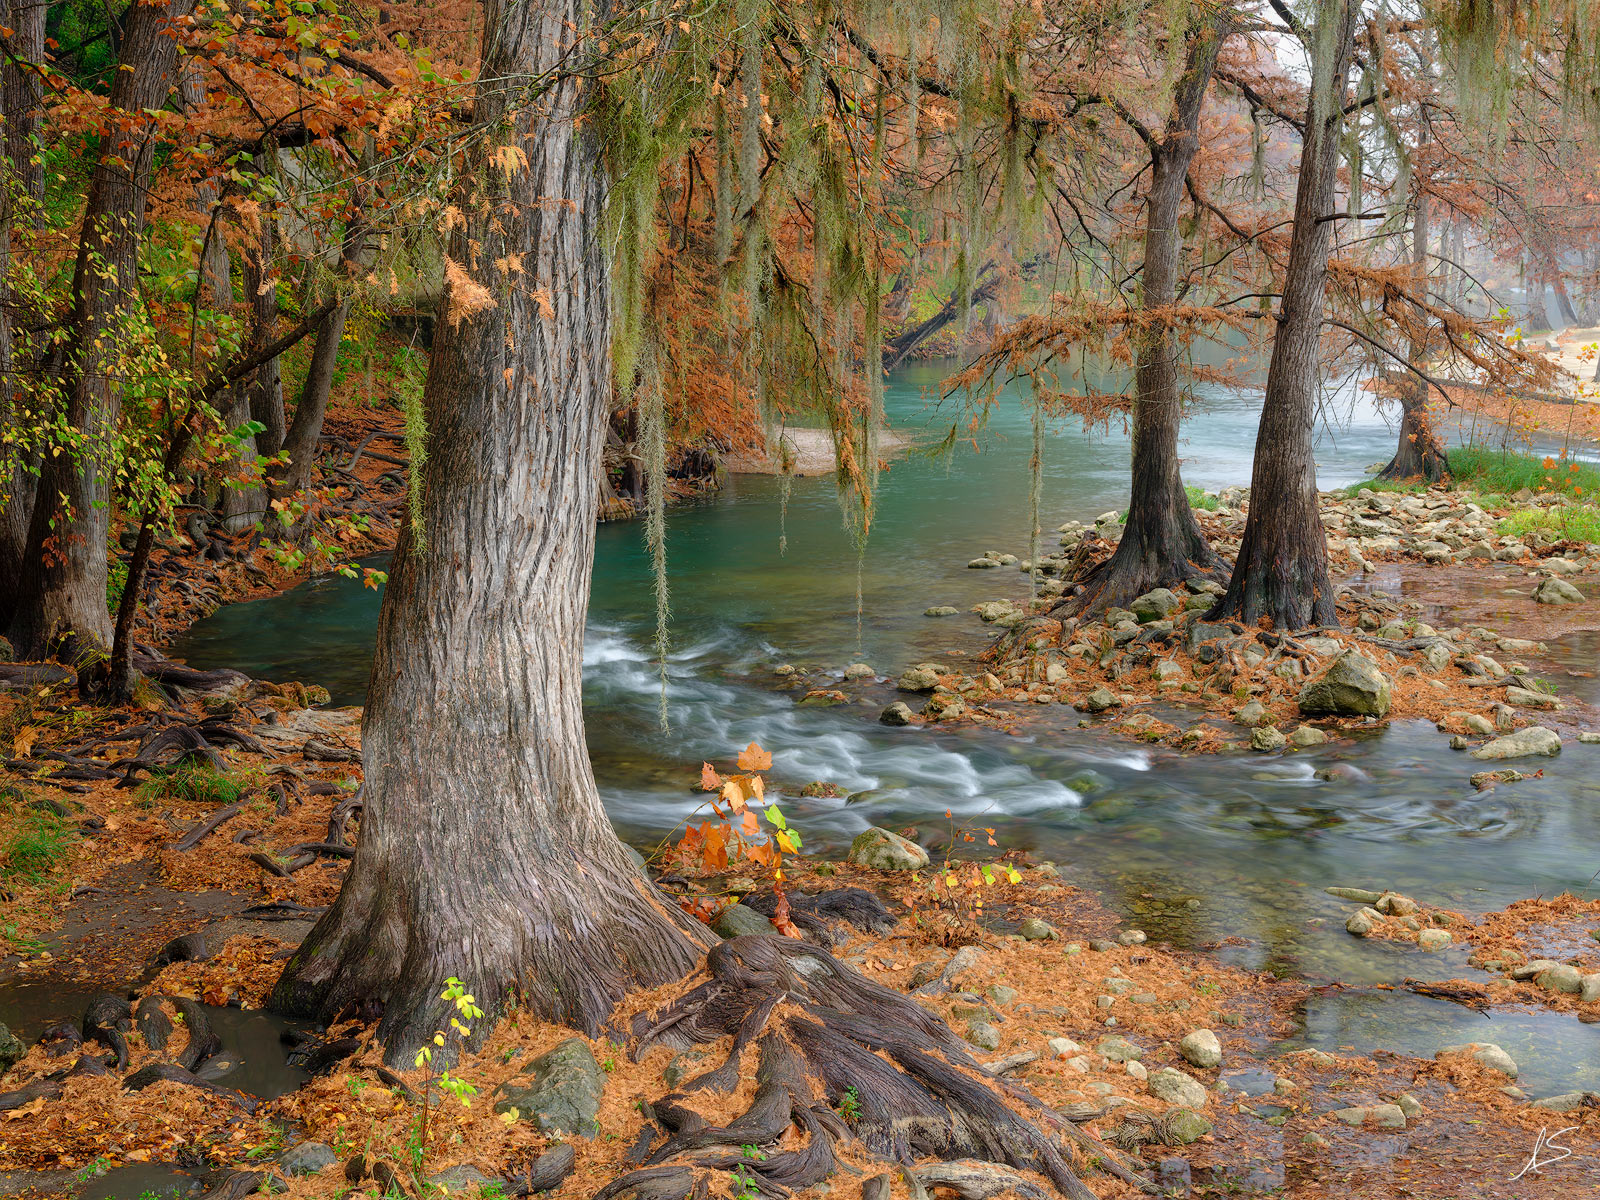 A touch of fall color in the cypress tress found along the Guadalupe River in the Hill Country of central Texas. © Adam Schallau...